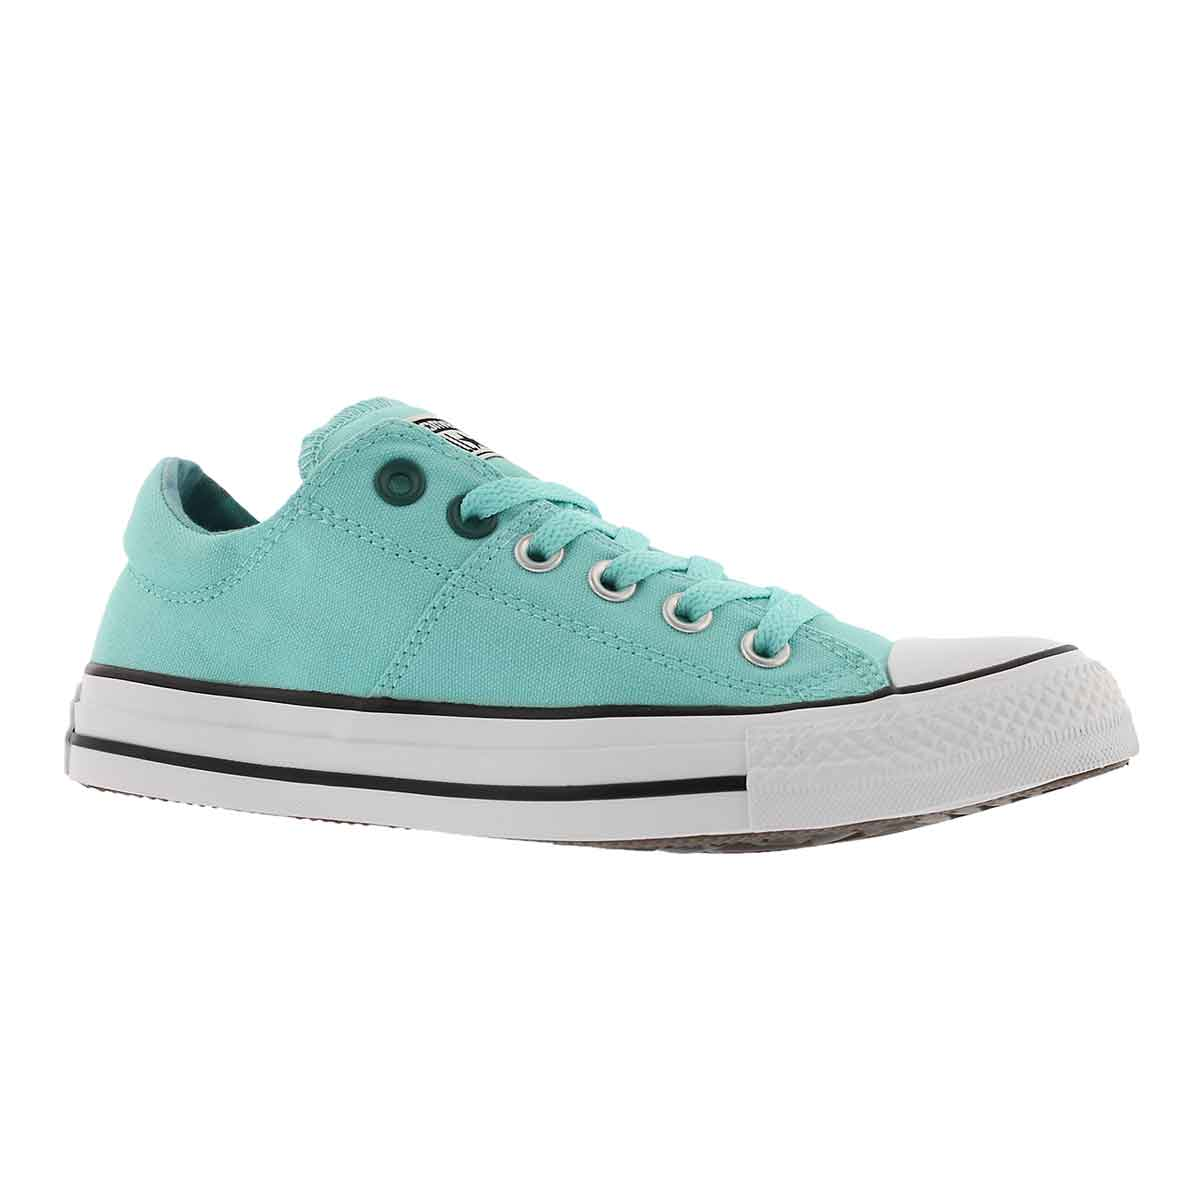 Lds CT A/S Madison lt aqua oxford sneakr